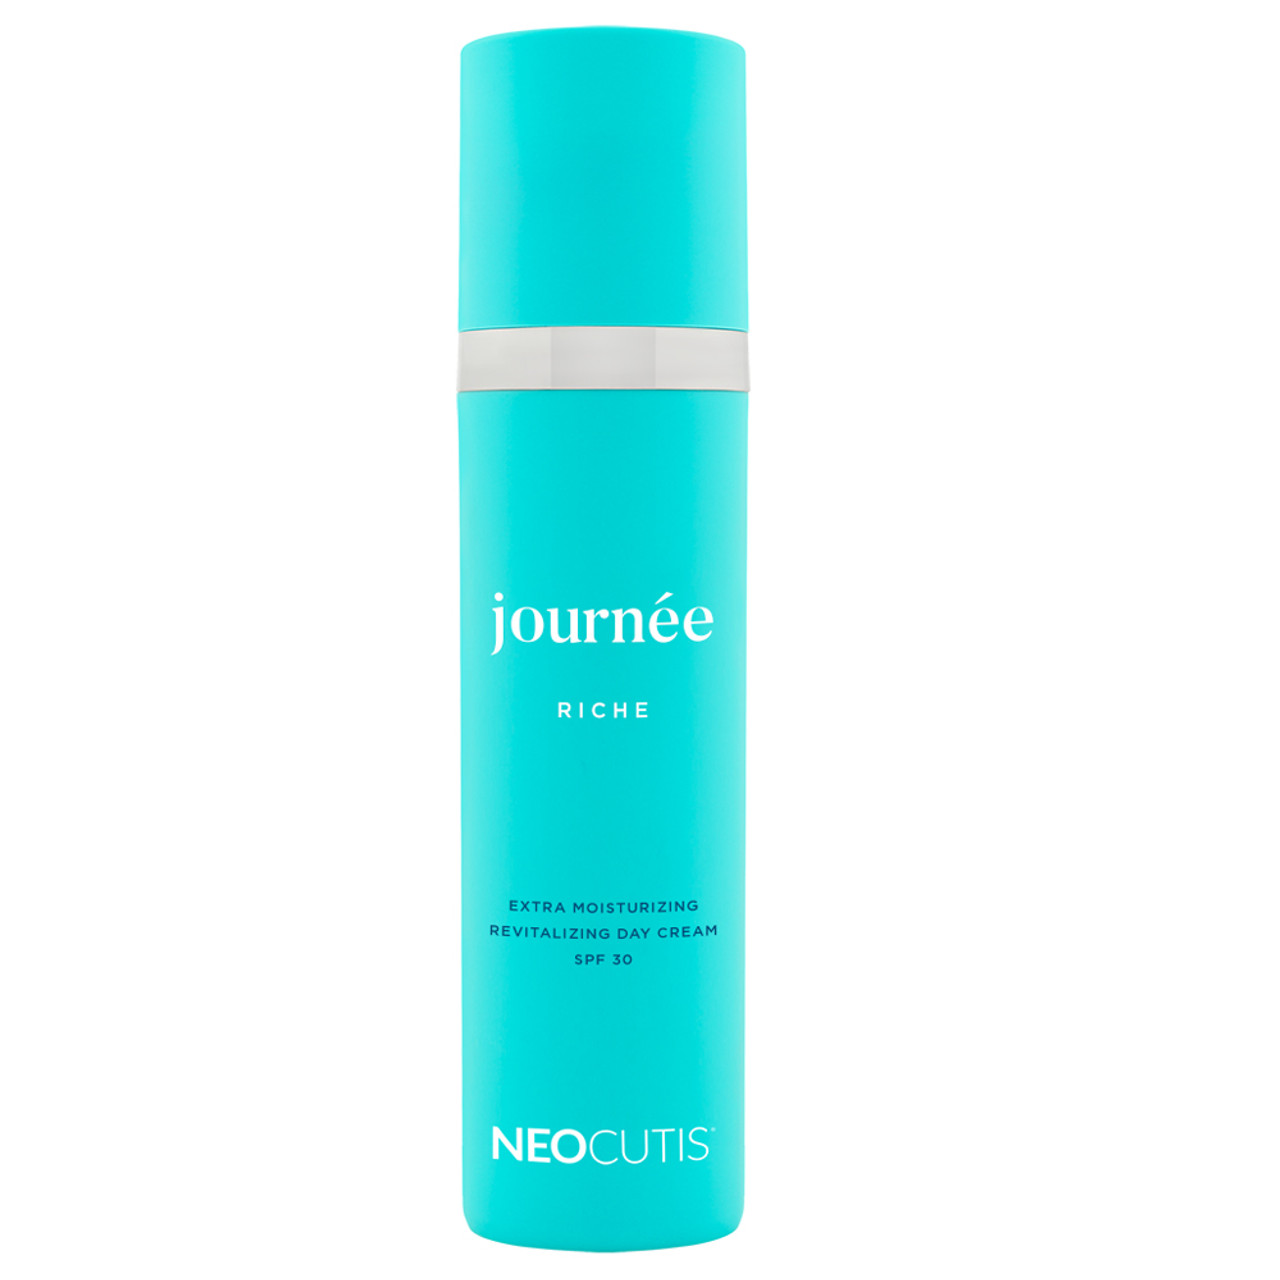 Neocutis Journee Riche Bio-Restorative Day Balm SPF 30